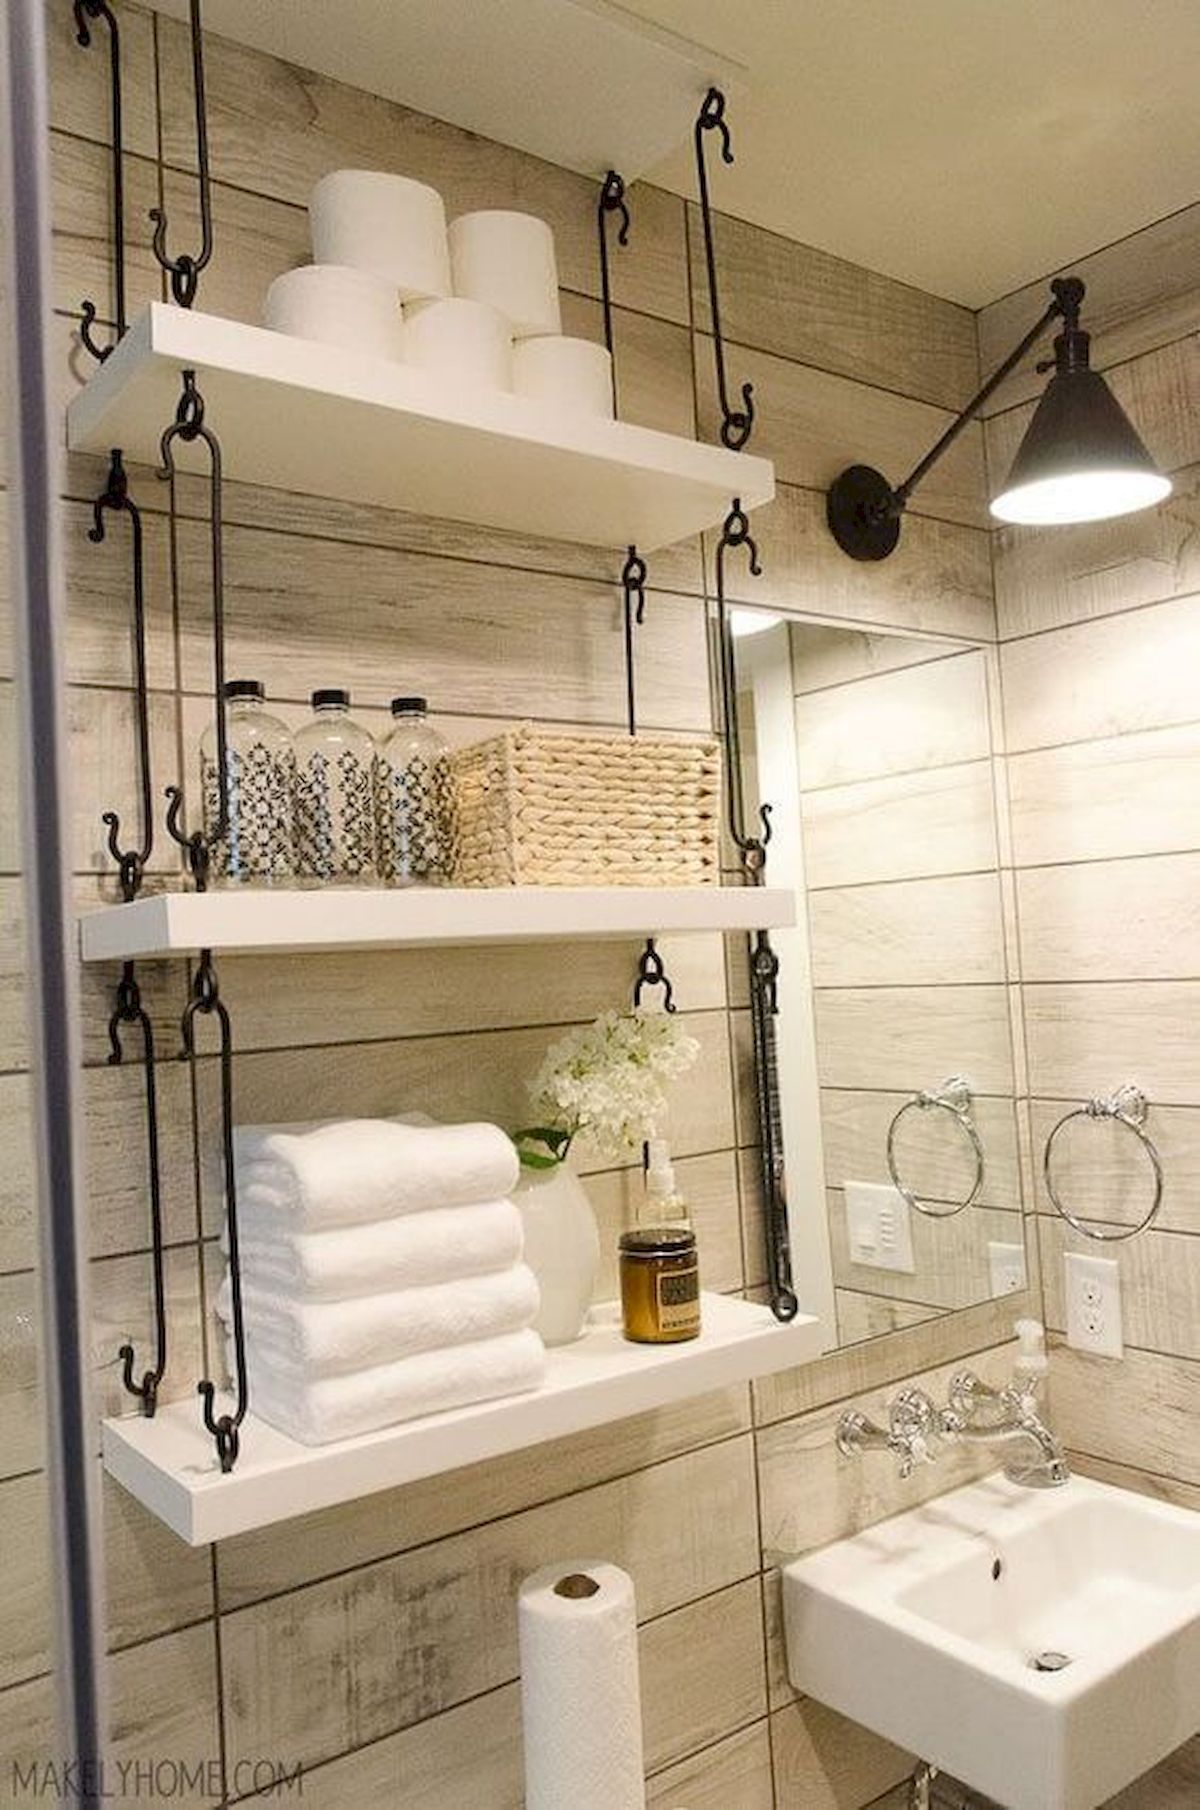 Awesome 25 Creative Bathroom Storage Ideas For Small Spaces Https Roomadness Com 2018 07 30 25 Creative Small Bathroom Remodel Small Bathroom Toilet Shelves